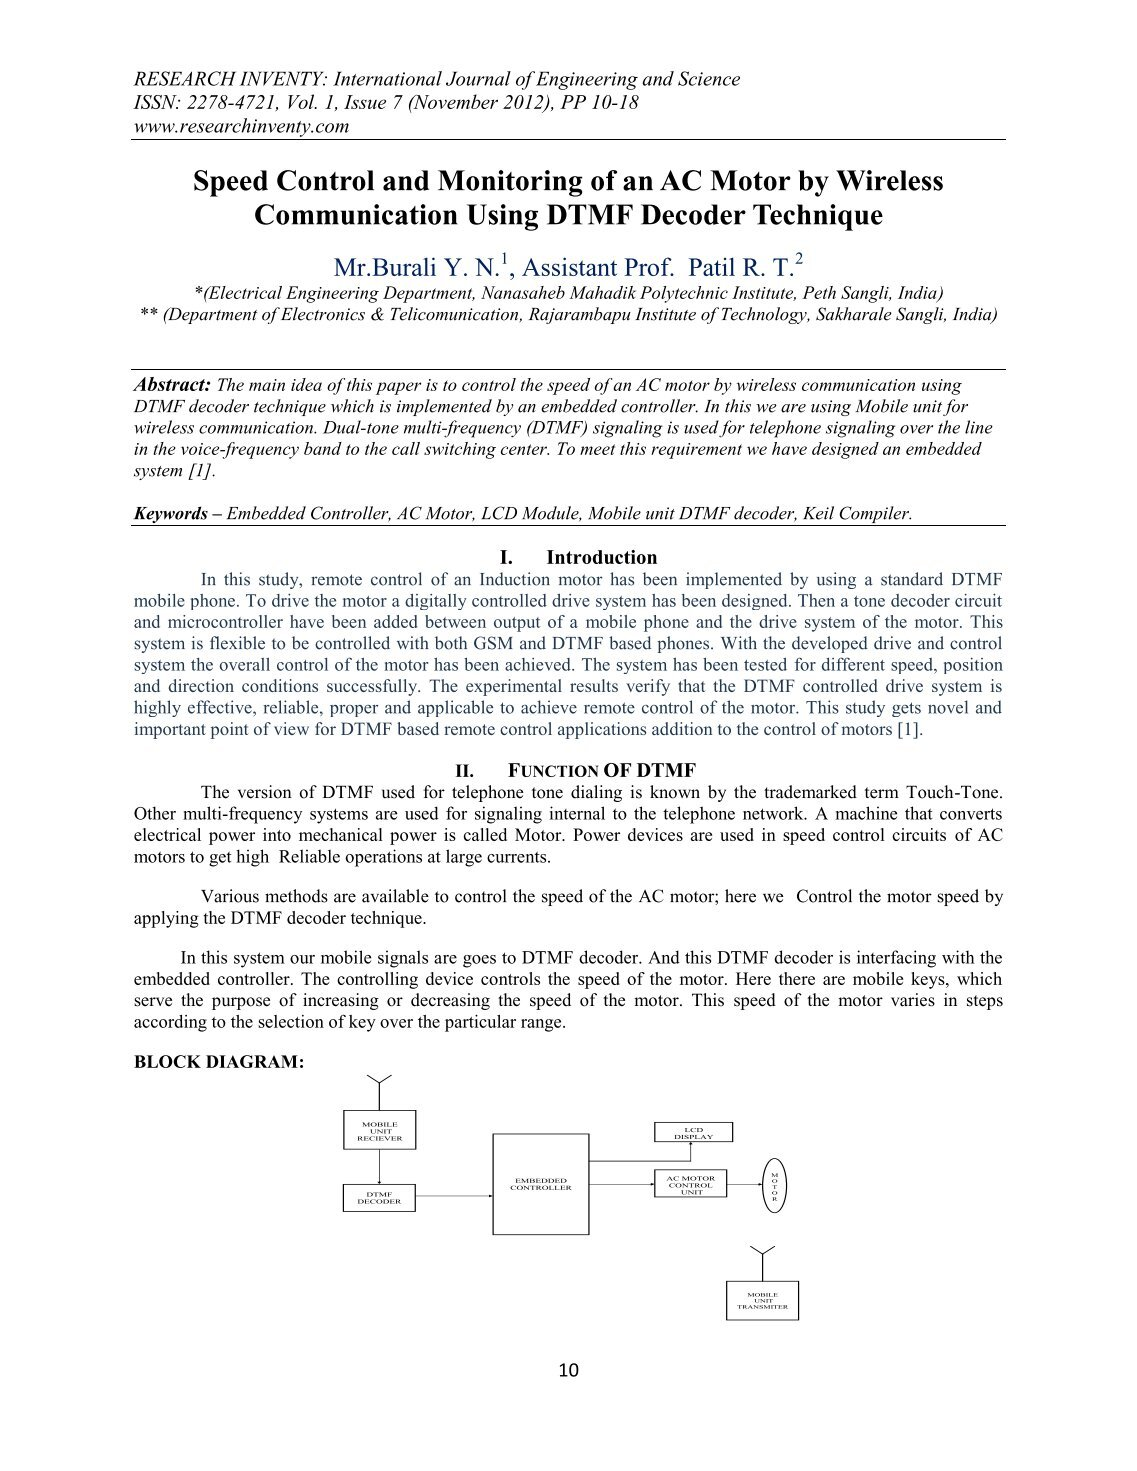 160 Free Magazines From Researchinventycom Dtmf Decoder Circuit Diagram